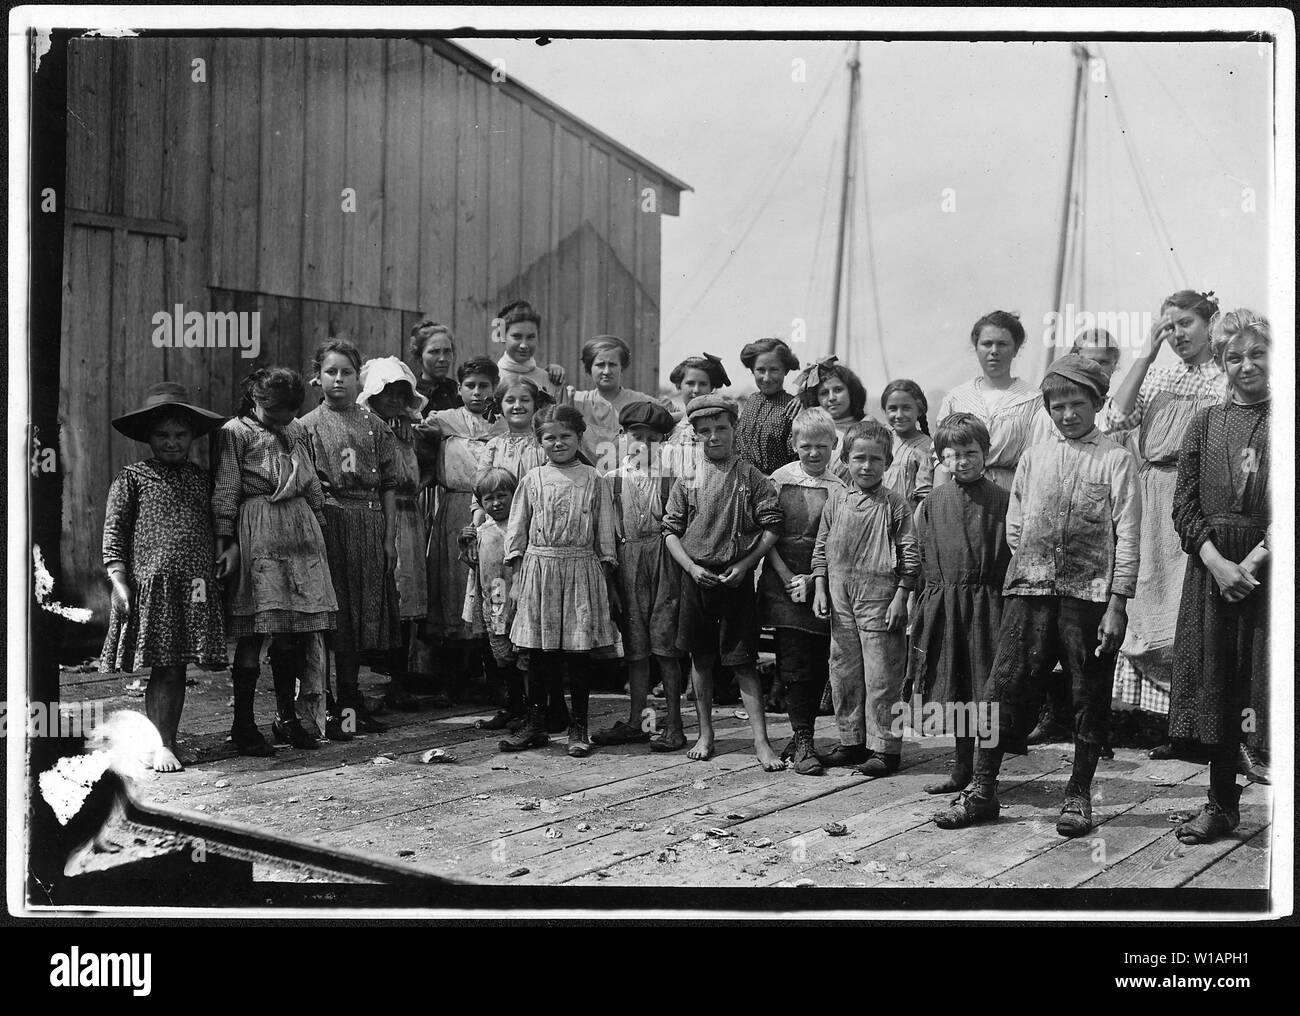 All these pick shrimp at the Peerless Oyster Co. I had to take photo while bosses were at dinner as they refused to permit the children to be in photos. Out of 60 workers, 15 were apparently under 12 years old. Bay St. Louis, Miss. - Stock Image